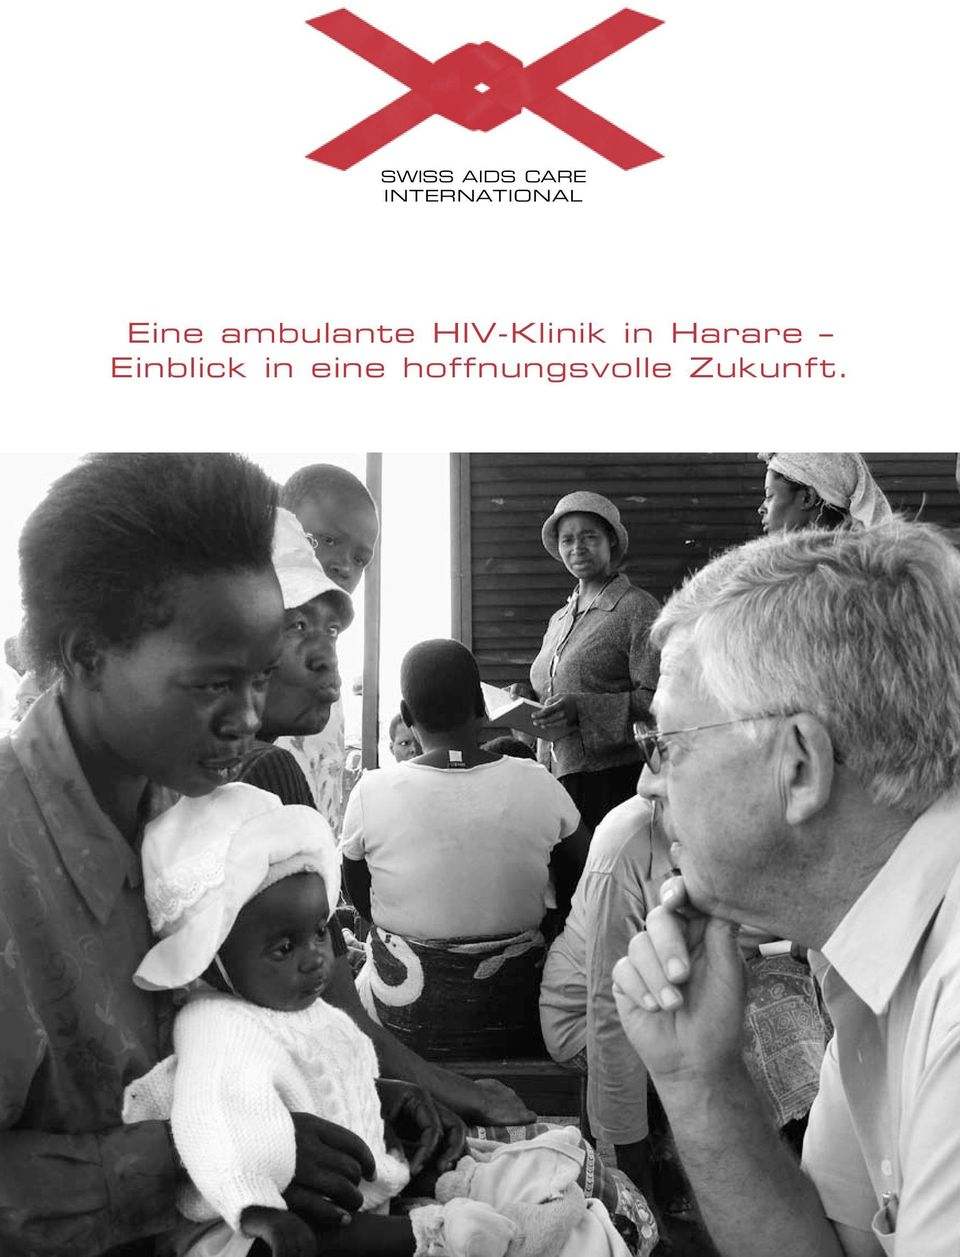 ambulante HIV-Klinik in